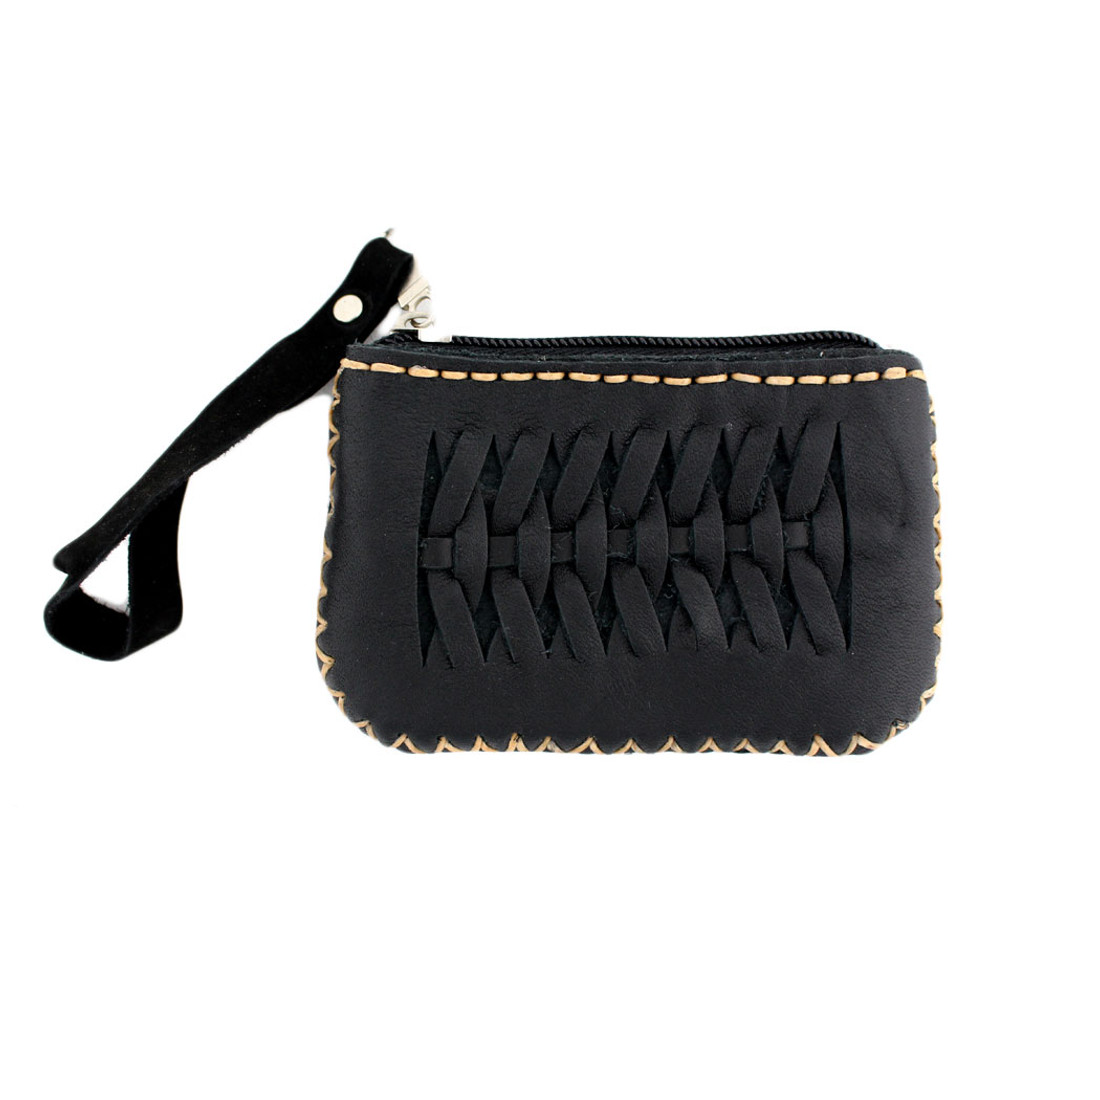 Small Black Leather Coin Purse or Wristlet